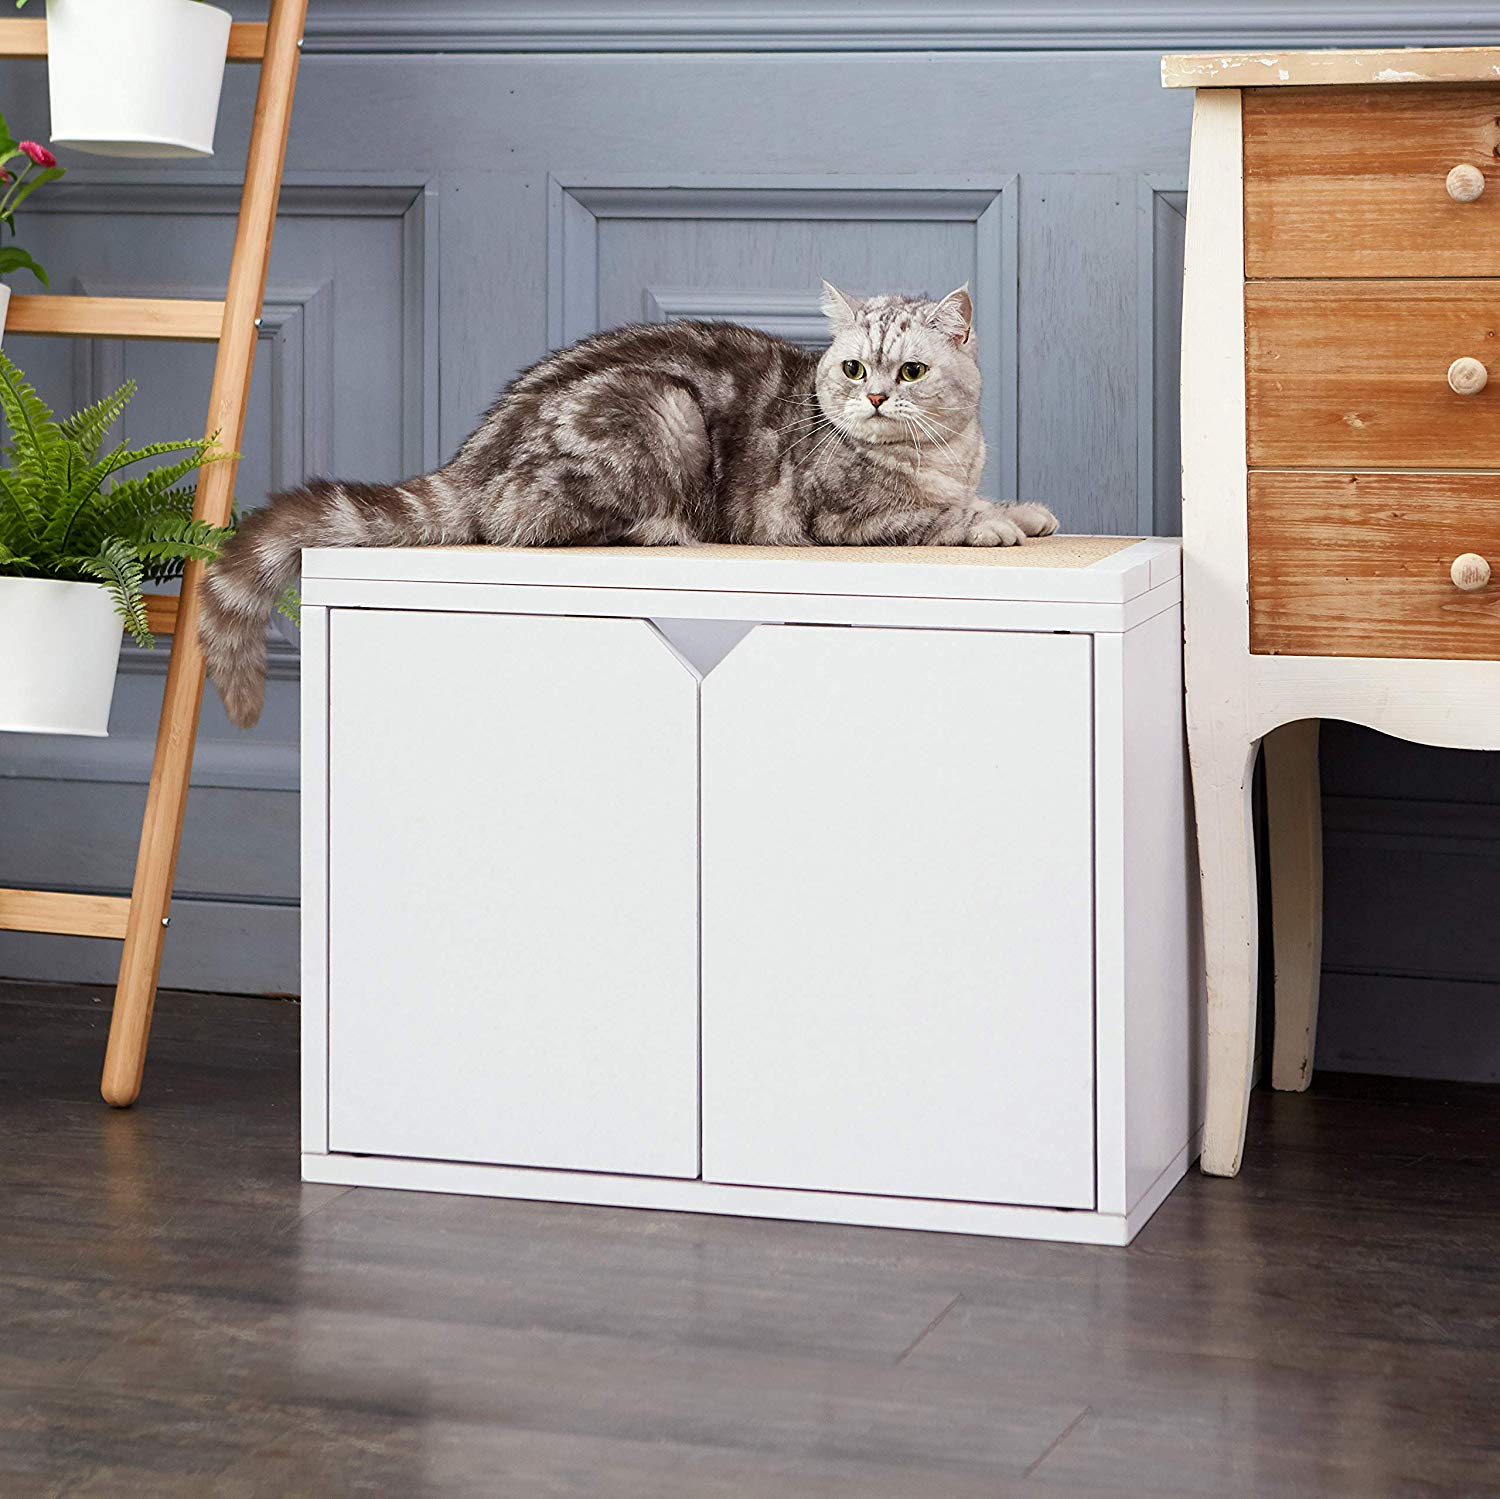 Way Basics Eco Friendly Cat Litter Box Enclosure with Doors